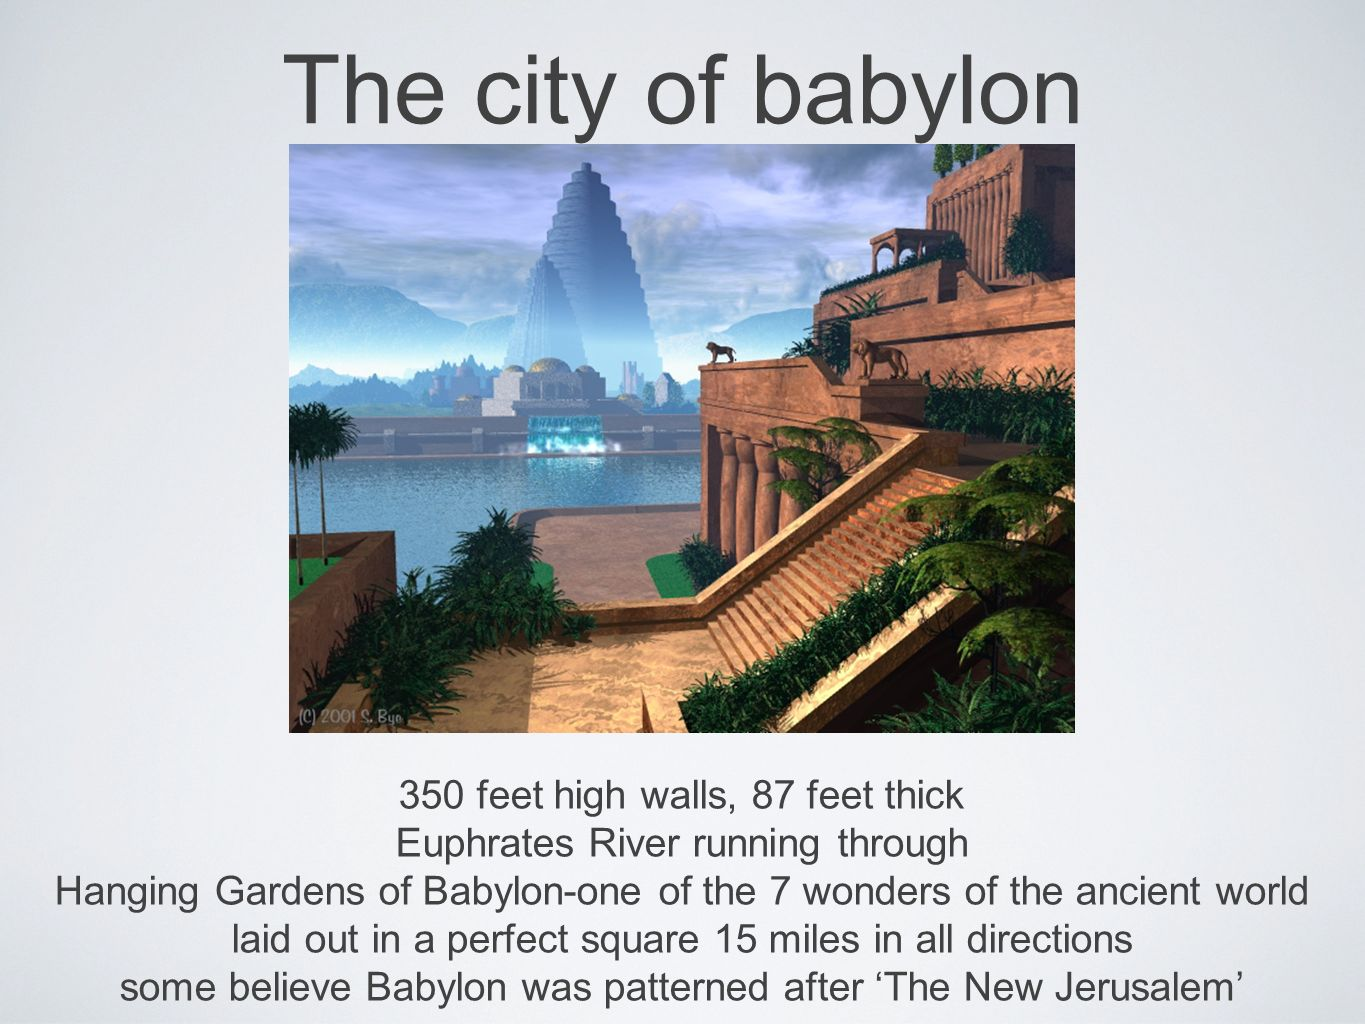 The city of babylon 350 feet high walls, 87 feet thick Euphrates River running through Hanging Gardens of Babylon-one of the 7 wonders of the ancient